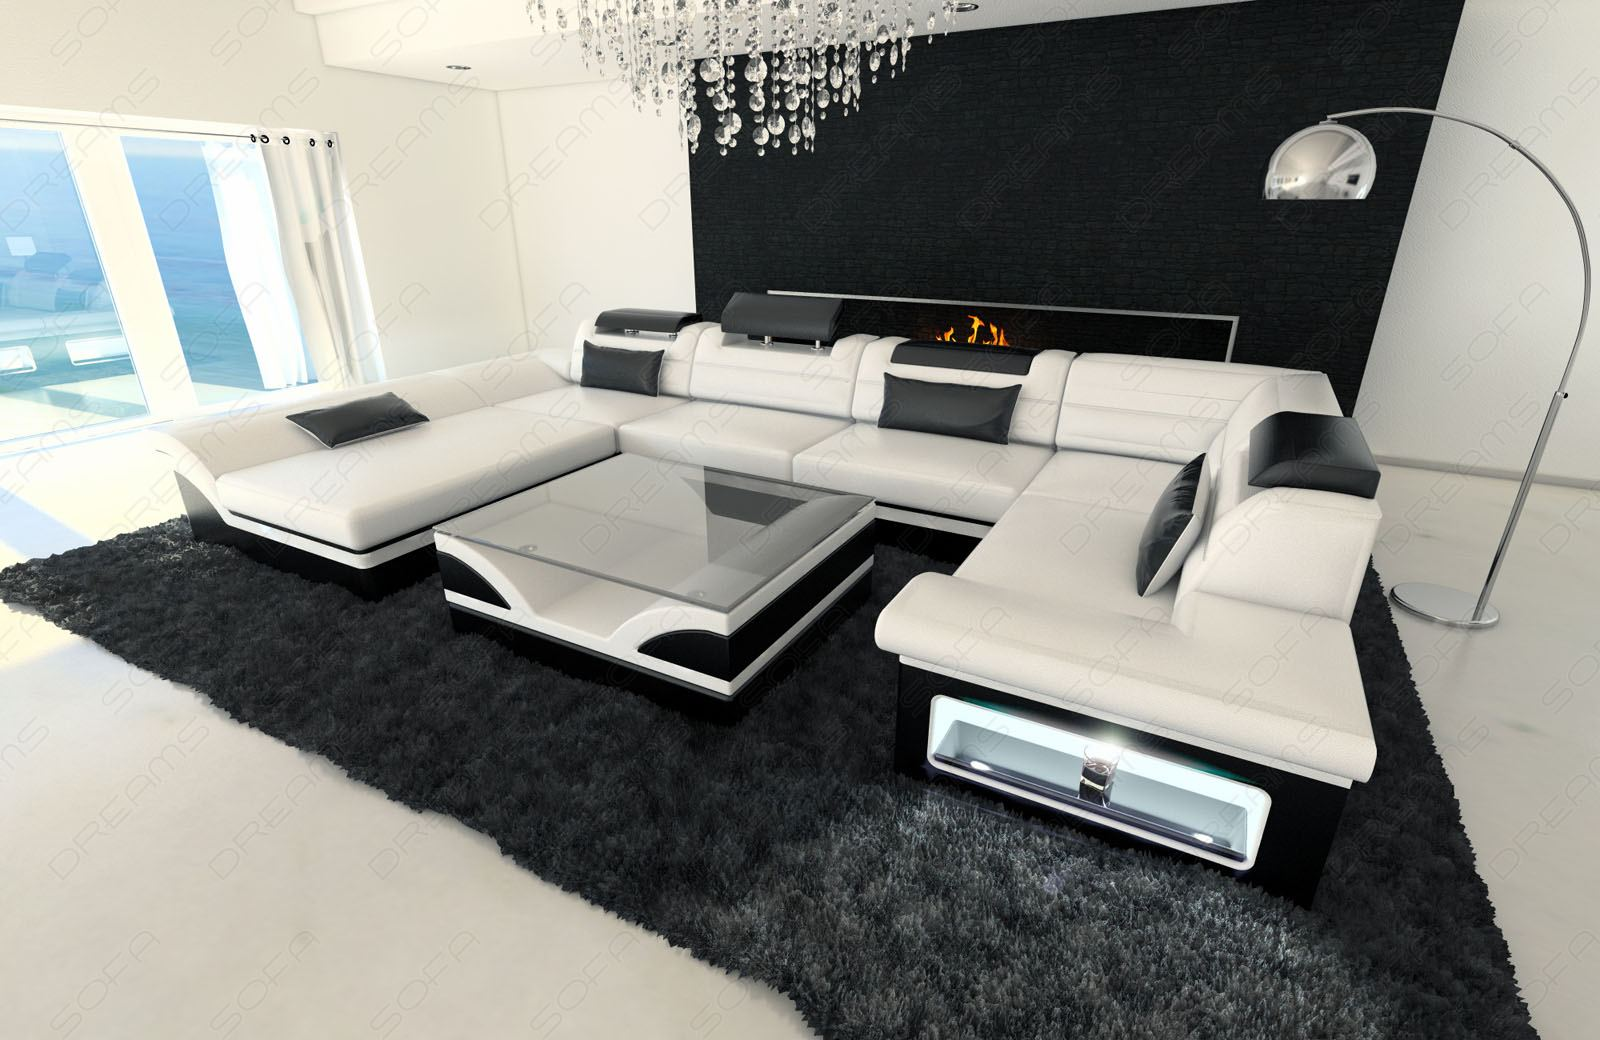 leather interior design enzo u shaped sofa with led. Black Bedroom Furniture Sets. Home Design Ideas